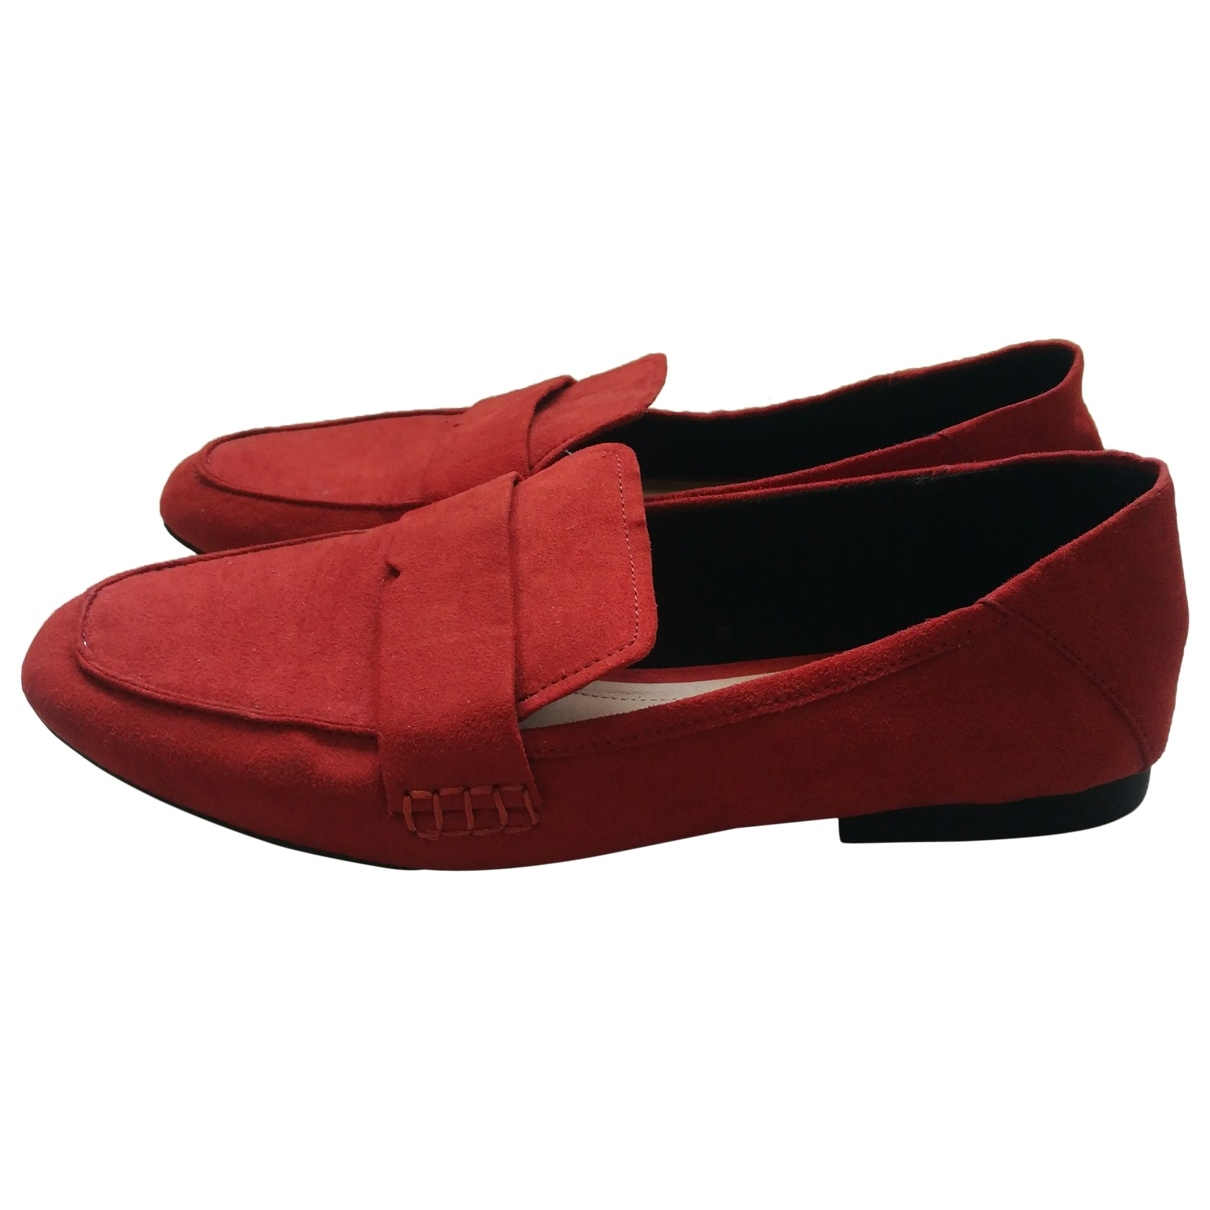 Zara \N Orange Suede Flats for Women 38 EU